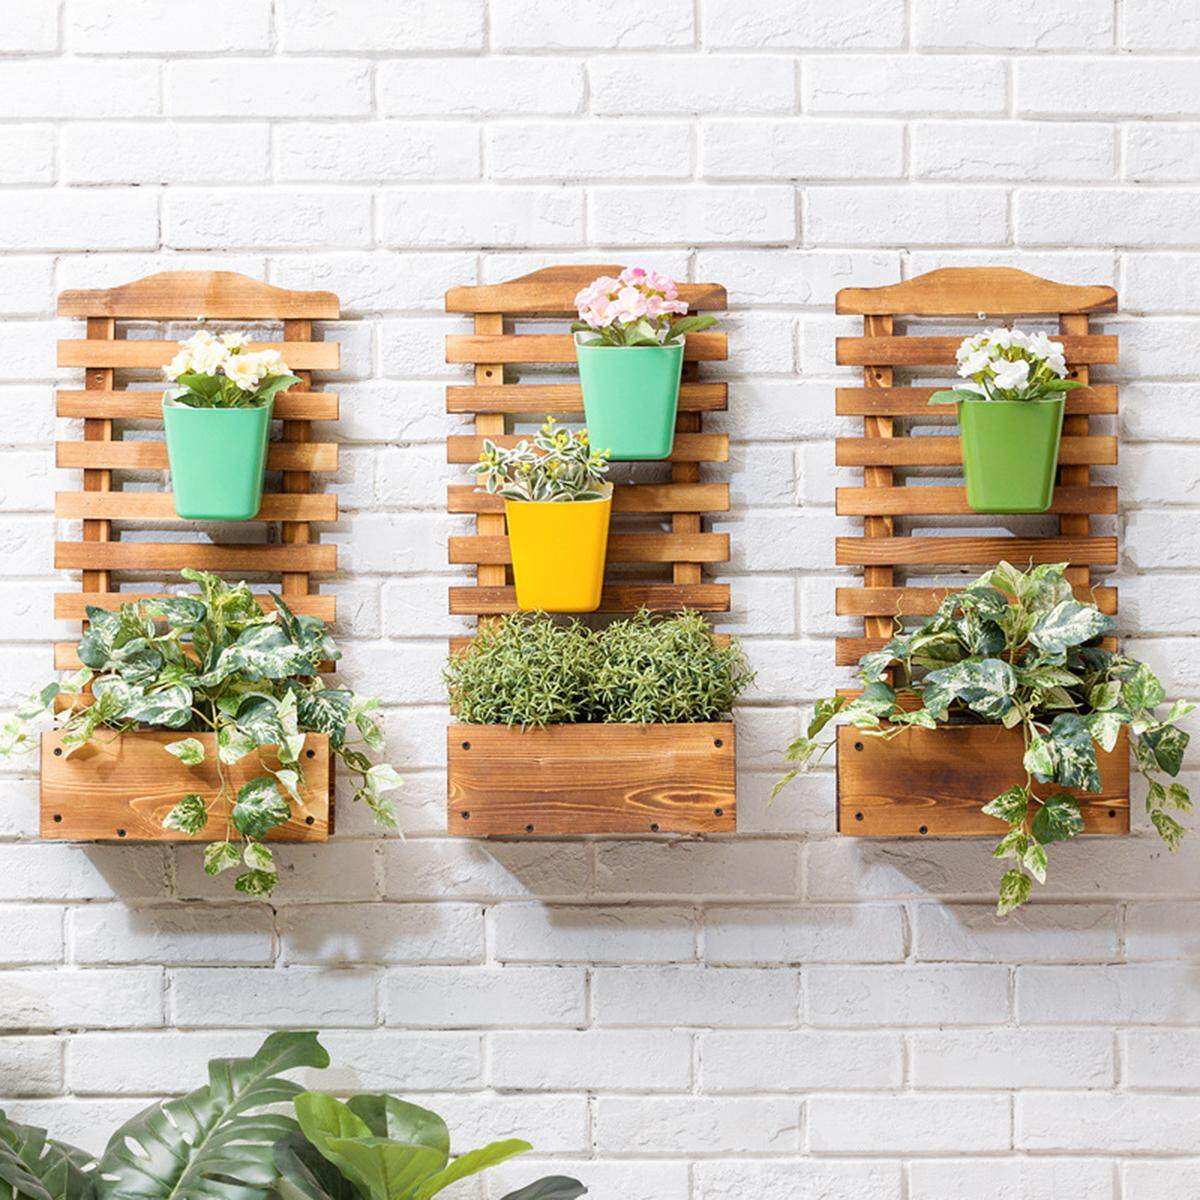 Mu Ma Ren Two wall-mounted flower shelf solid wood floor indoor multi-storey balcony living room fleshy flower pot Renting/Decoration